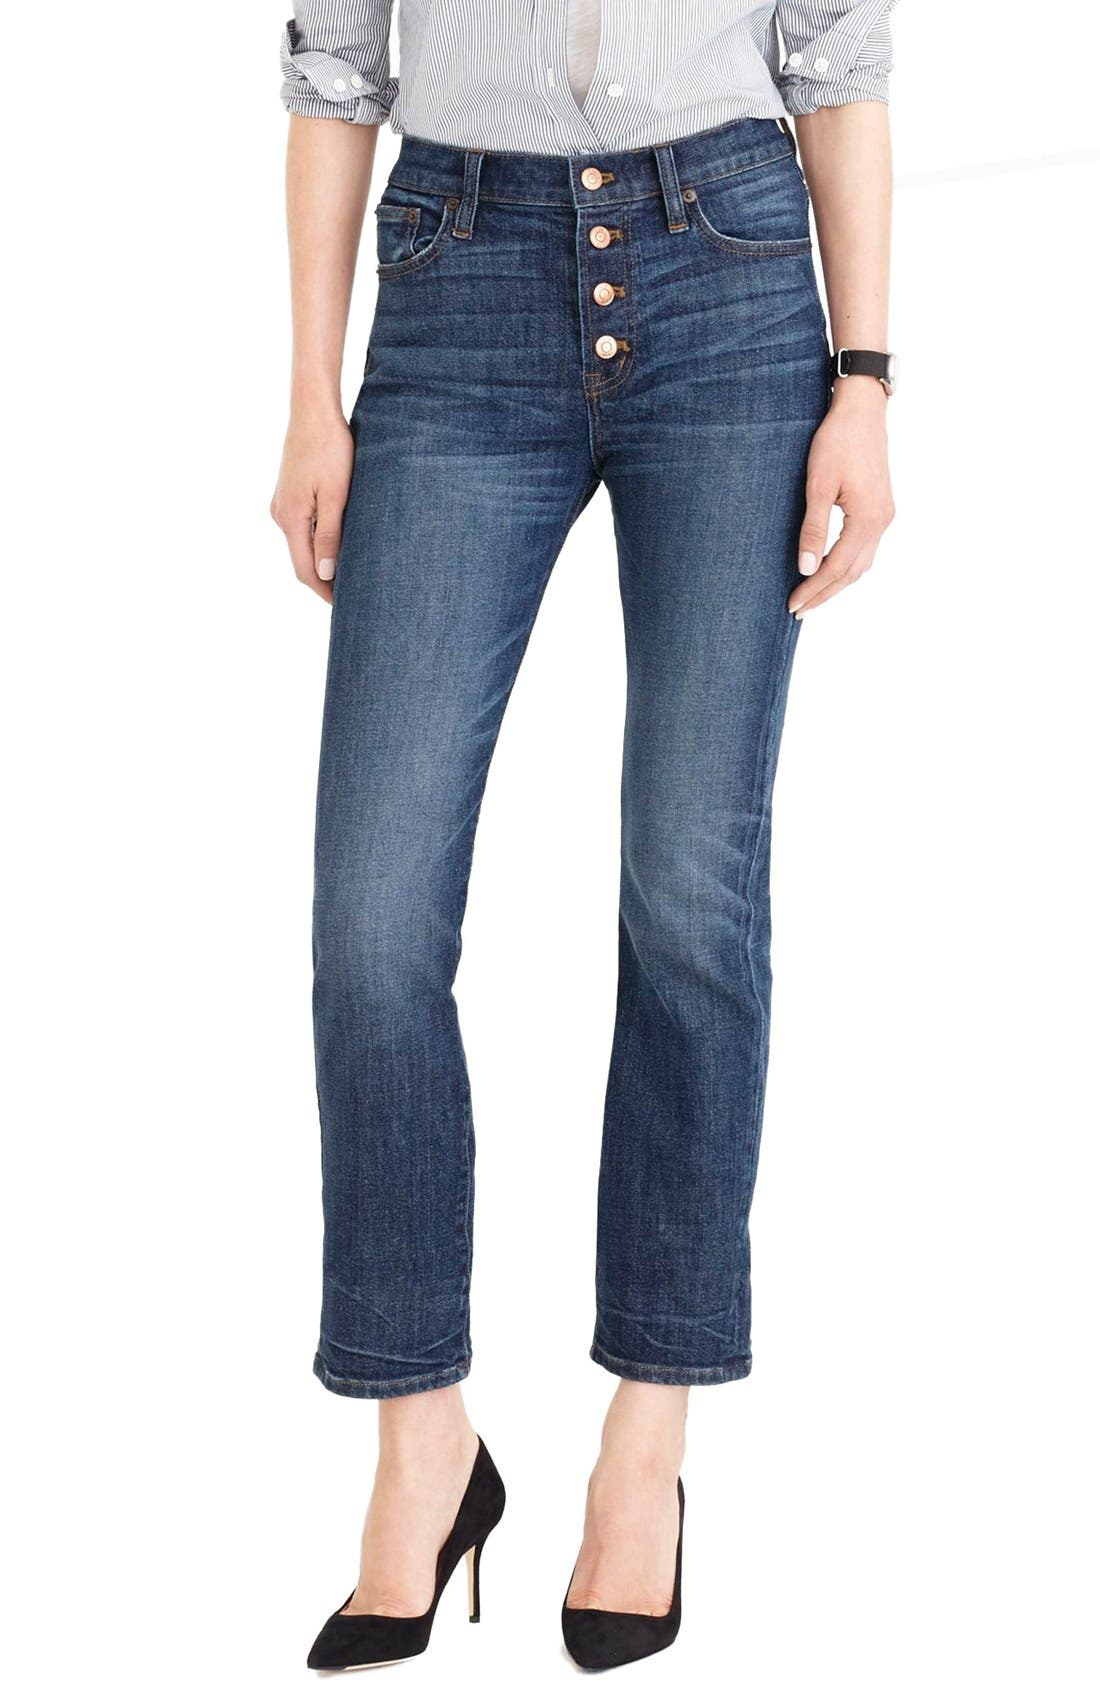 Main Image - J.Crew 'Straight Away' Stretch High Rise Crop Jeans